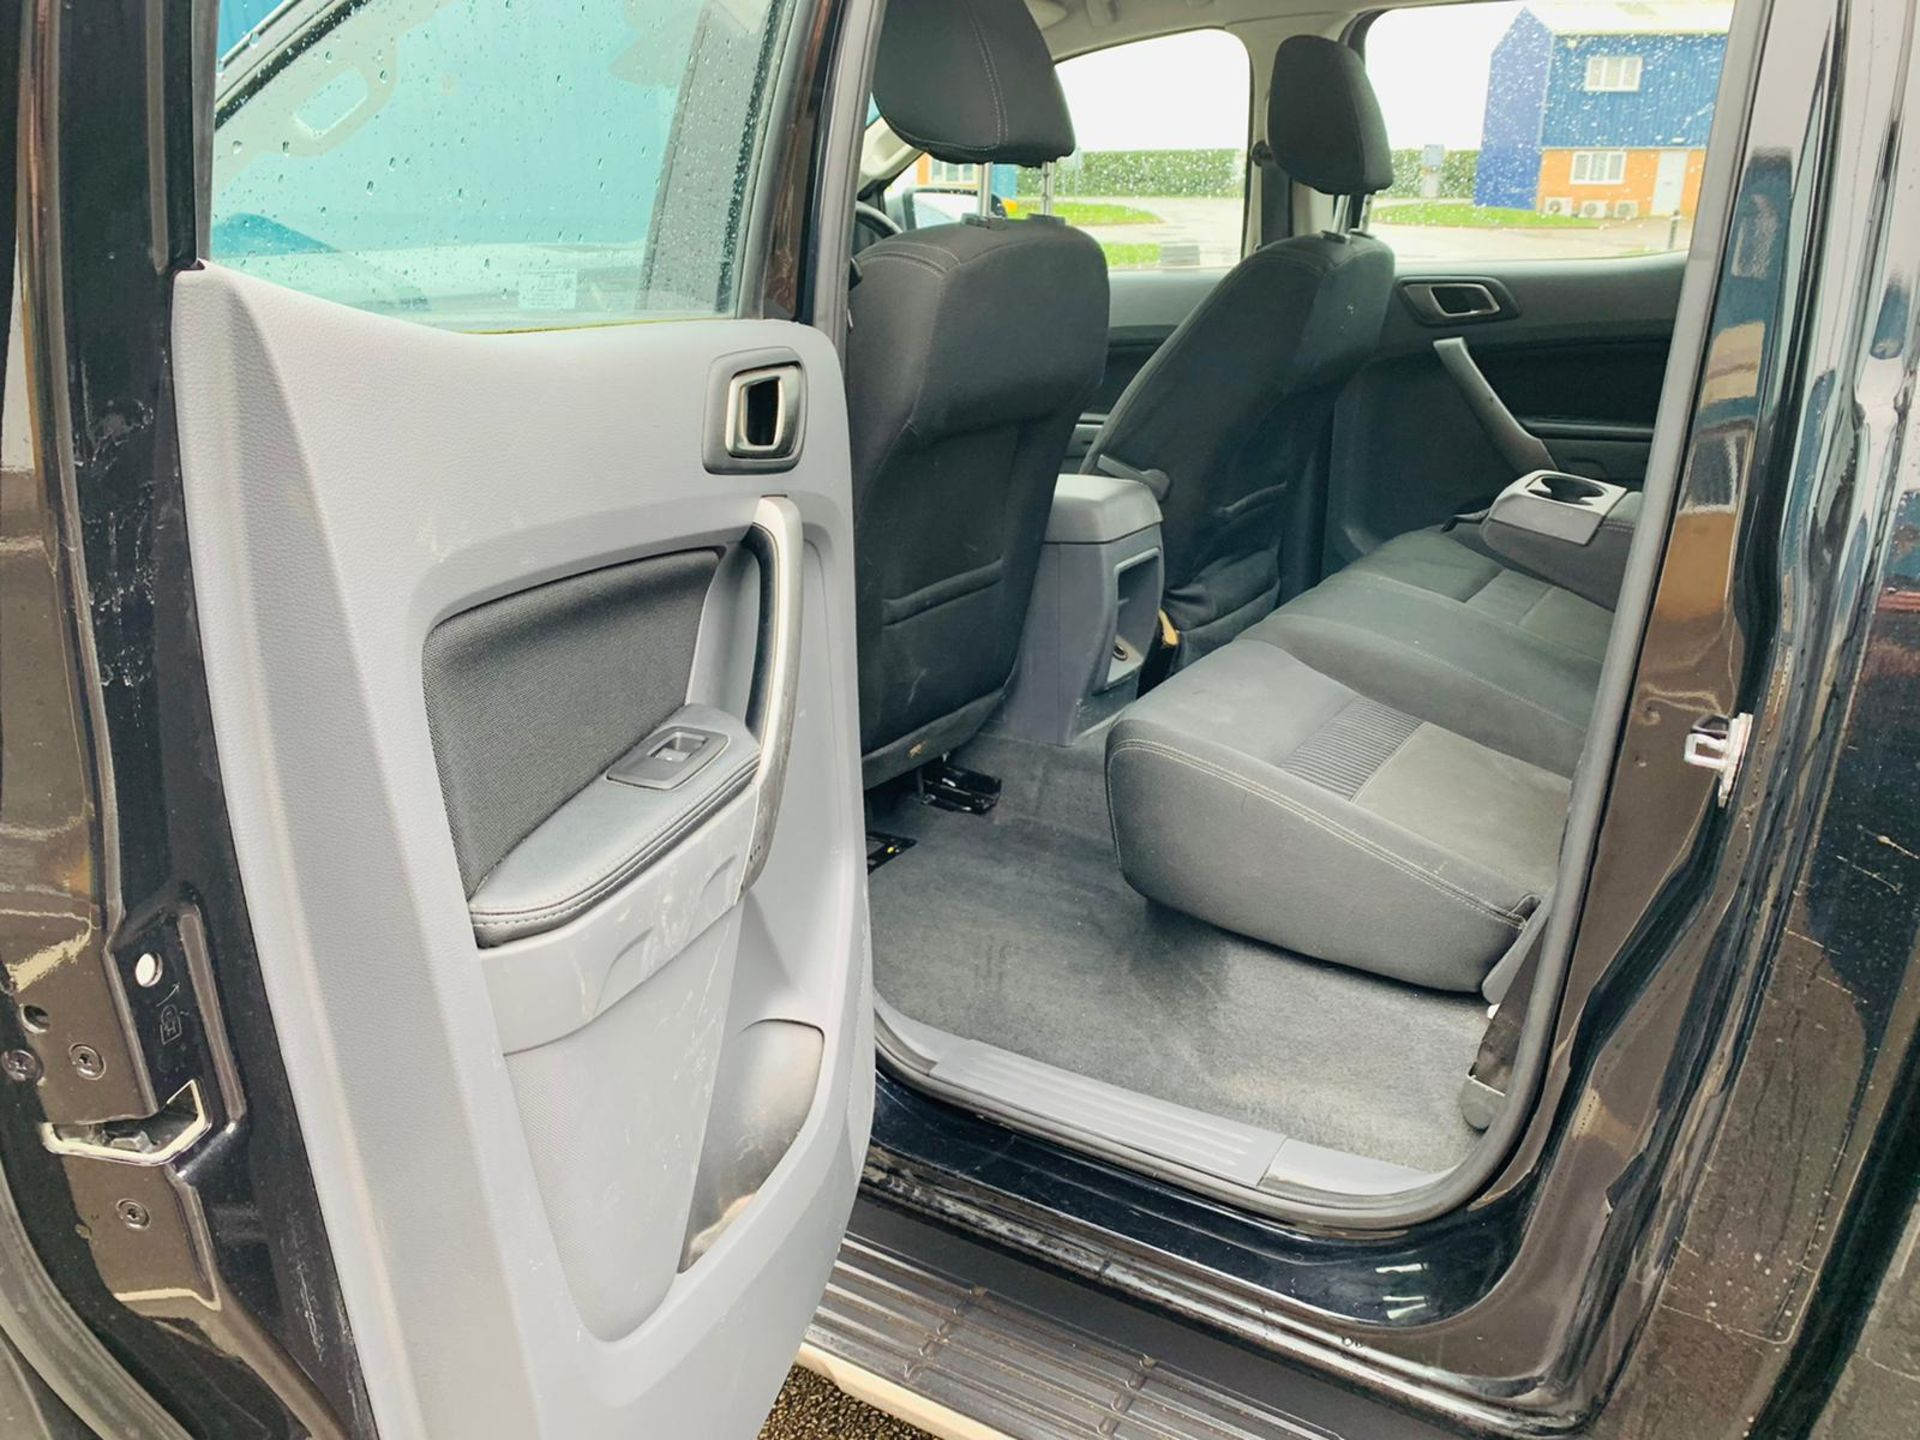 Ford Ranger 2.2 TDCI XLT 4x4 Double Cab - 2017 Model - Euro 6 - ULEZ Compliant - Service History - Image 10 of 24